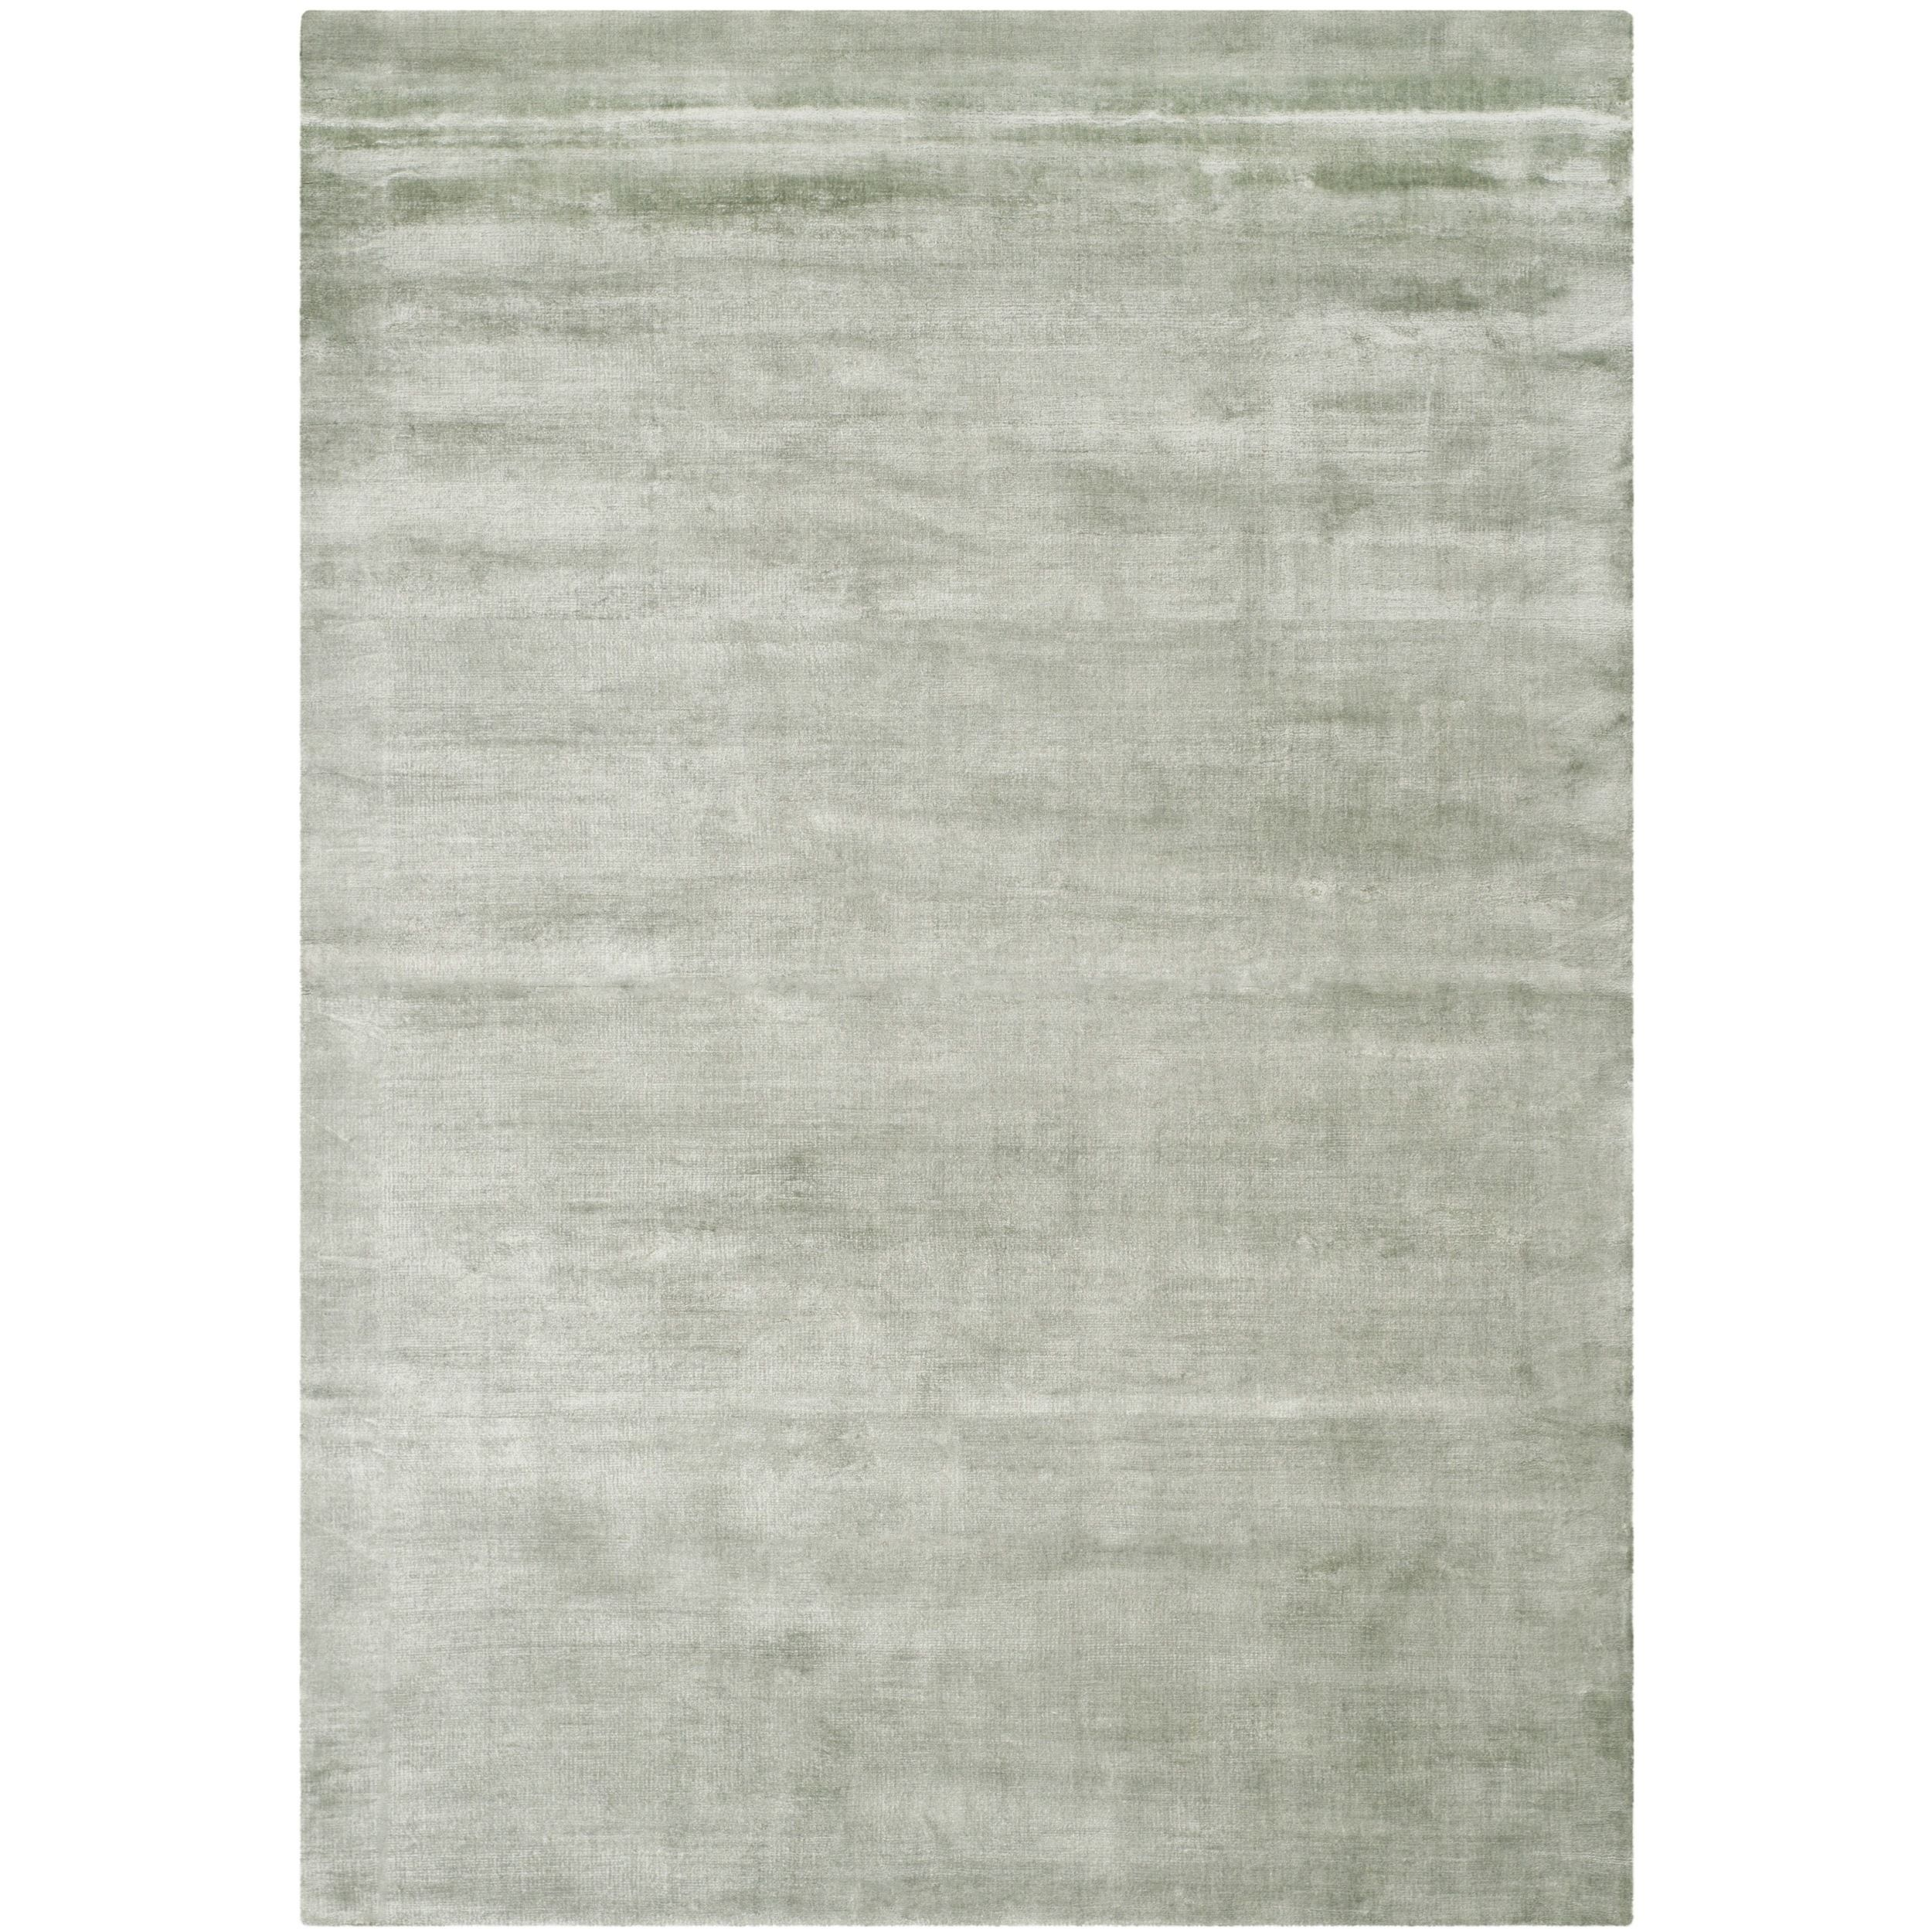 Safavieh Loom Knotted Mirage Villa Blue Viscose Rug 8 X 10 Overstock Com Shopping The Best Deals On 7x9 10x14 Rugs Viscose Rug Rugs Solid Area Rugs